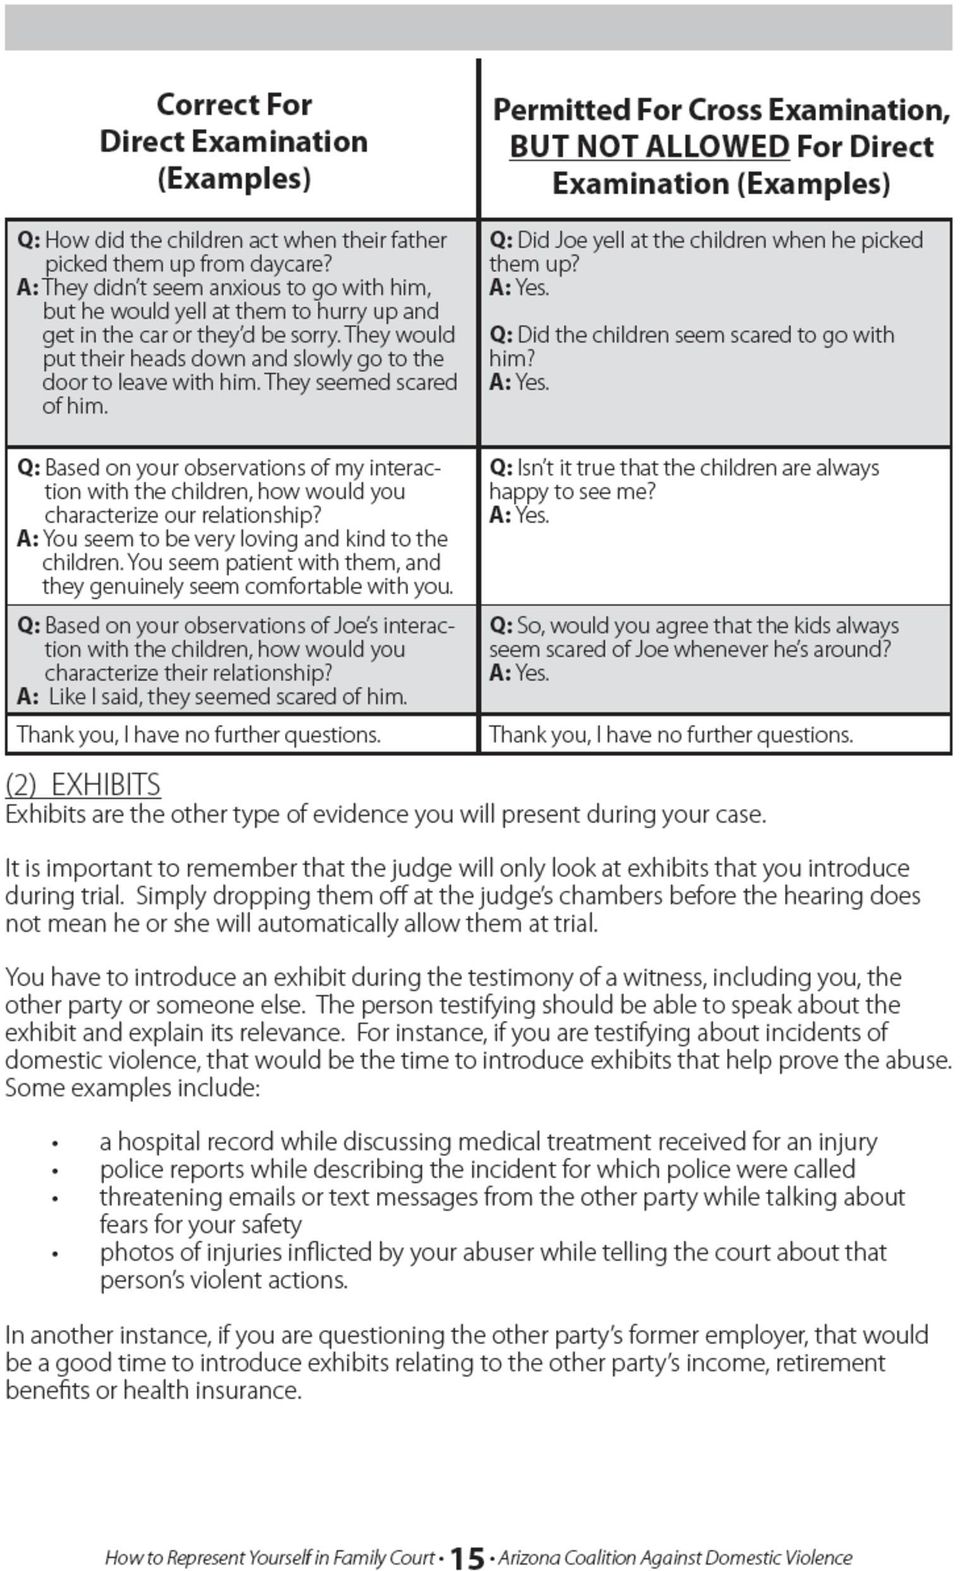 How To Represent Yourself In Family Court Pdf